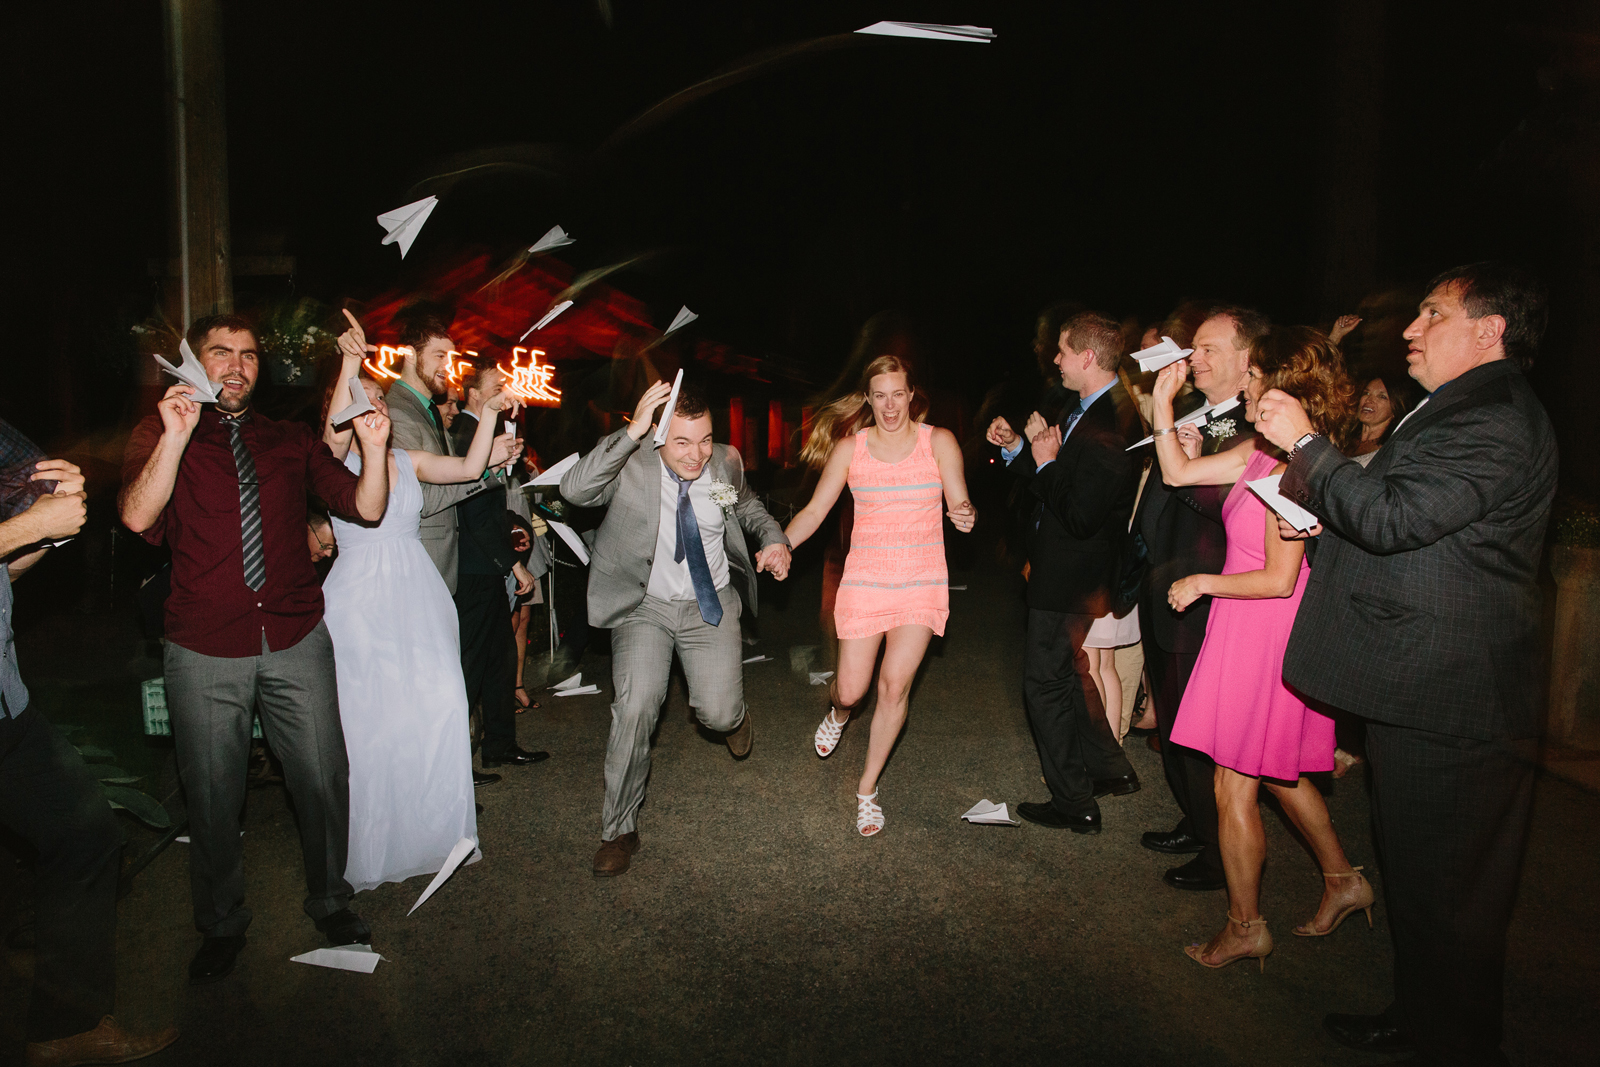 The bride and groom exit their wedding reception as guests throw paper airplanes at them during wedding reception at Bridal Veil Lakes in Corbett, OR